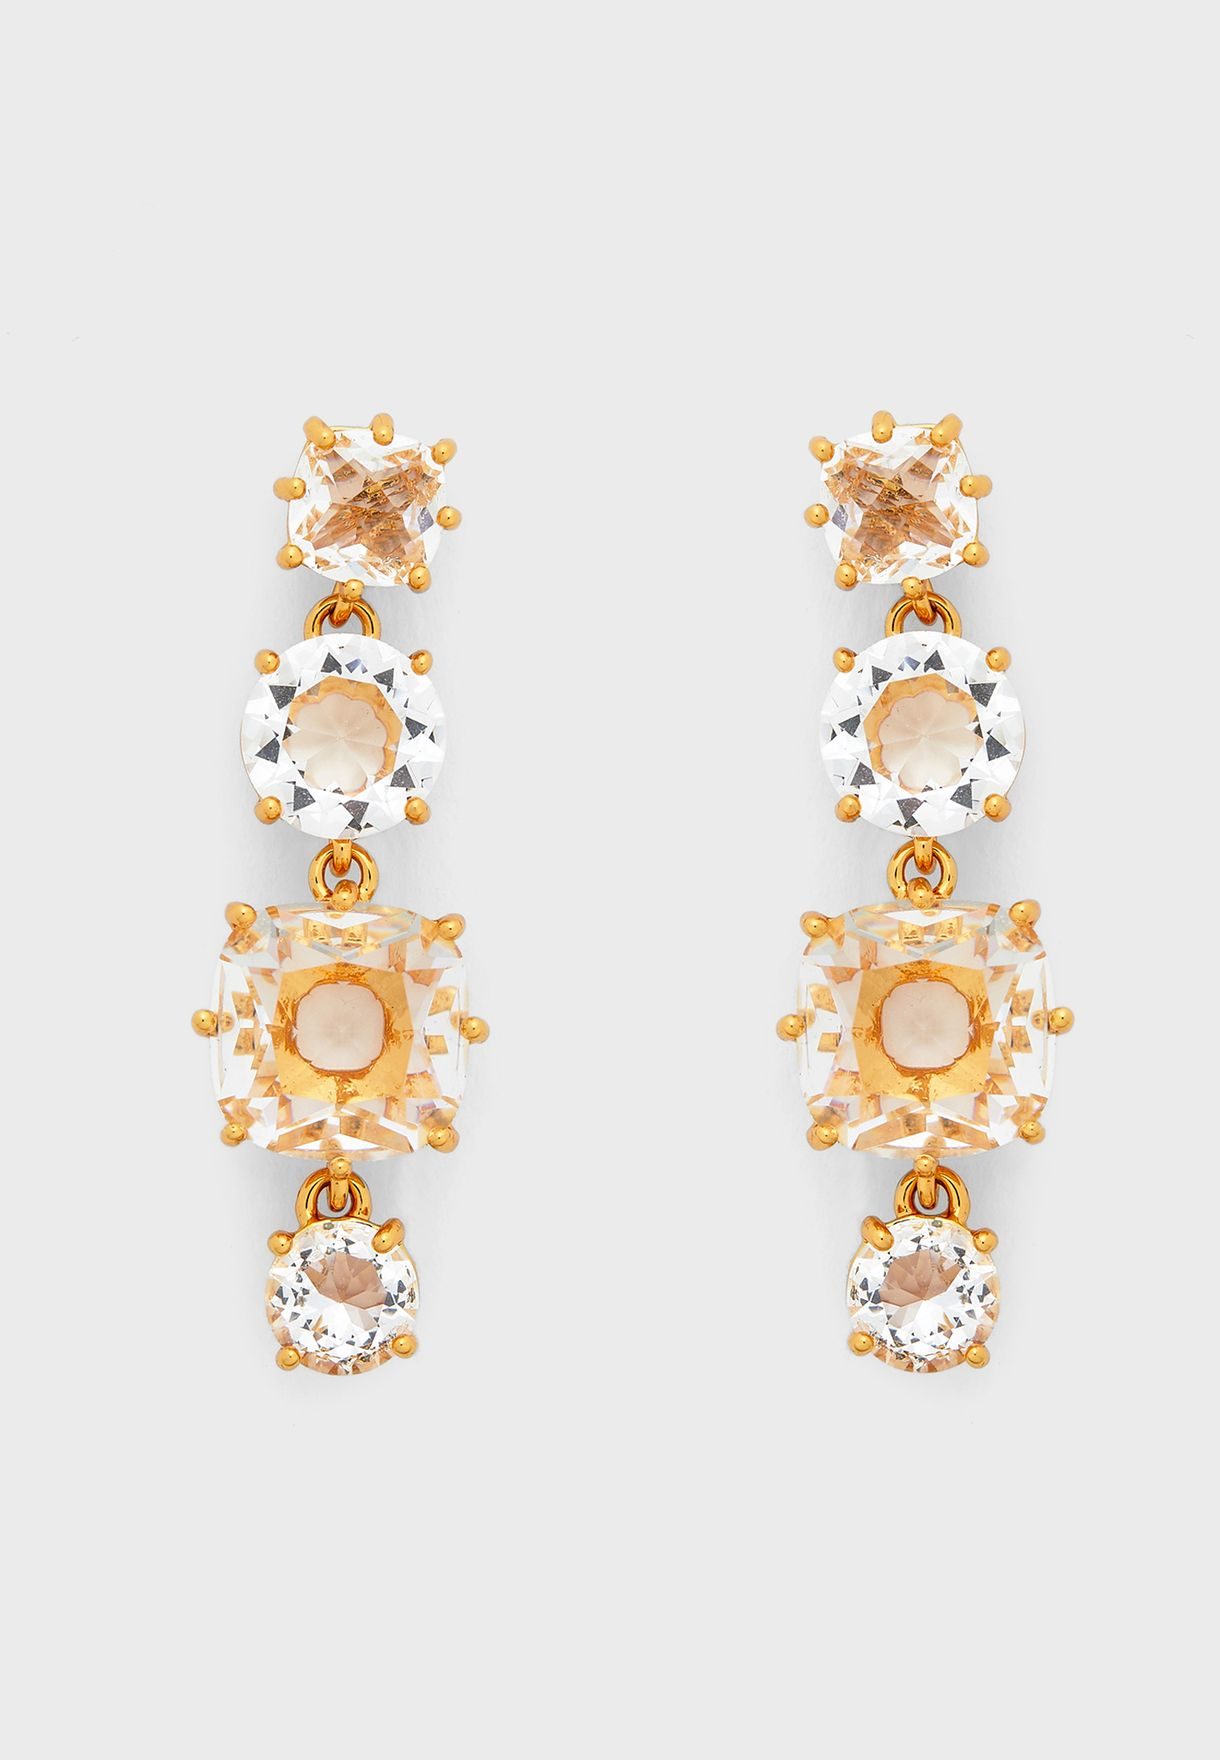 4 Crystal Stones Earrings